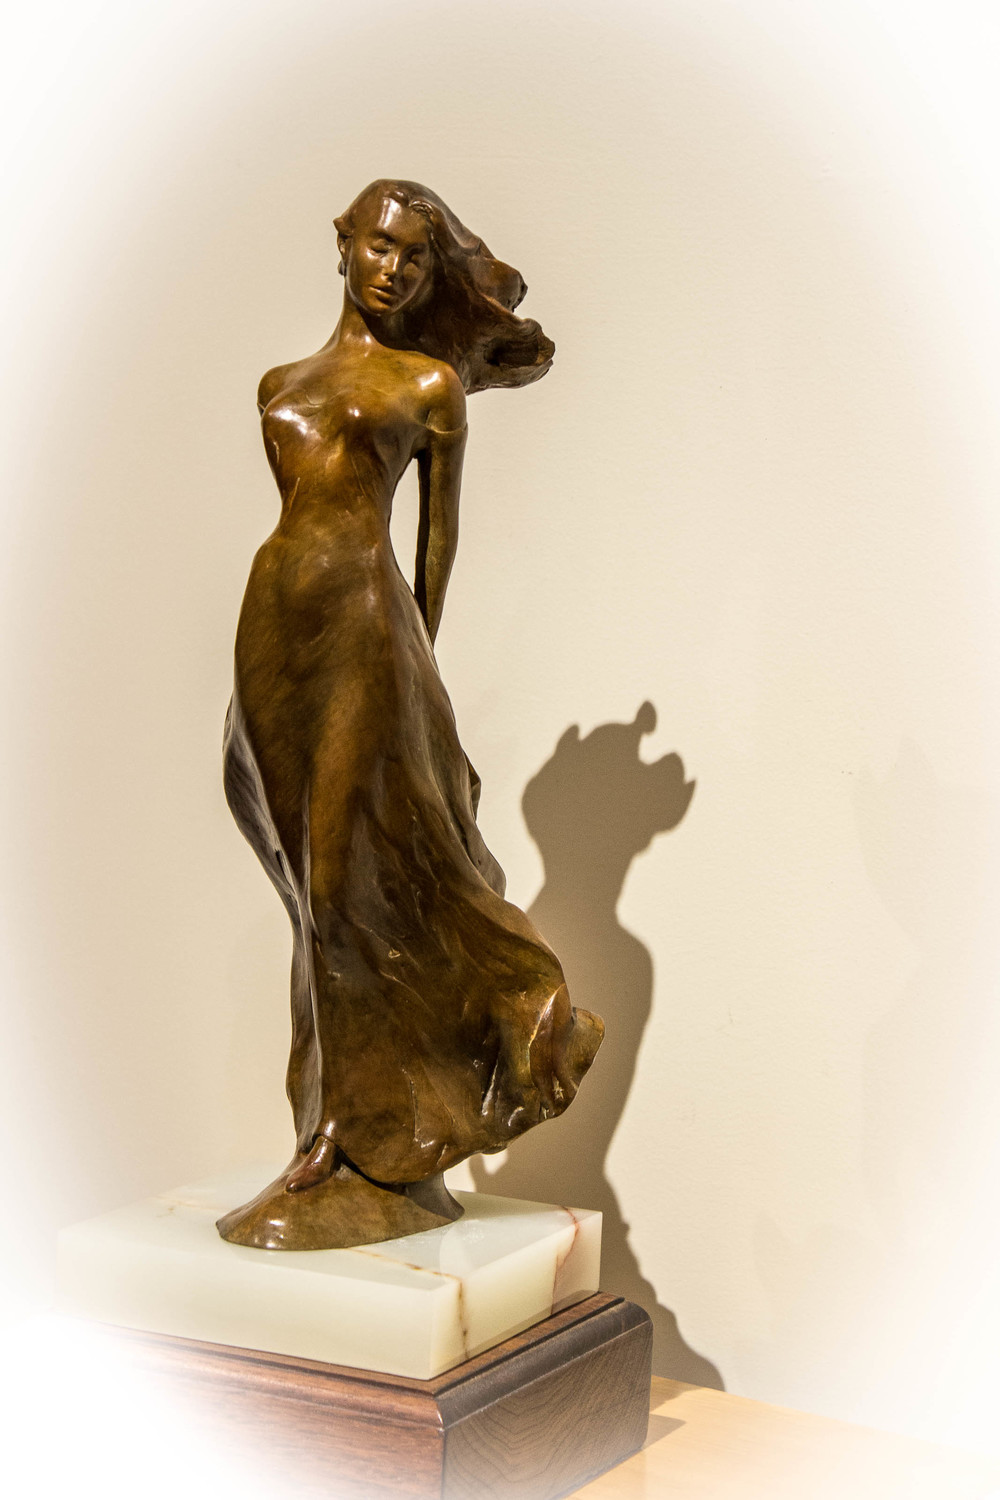 Howard Rogers, bronze